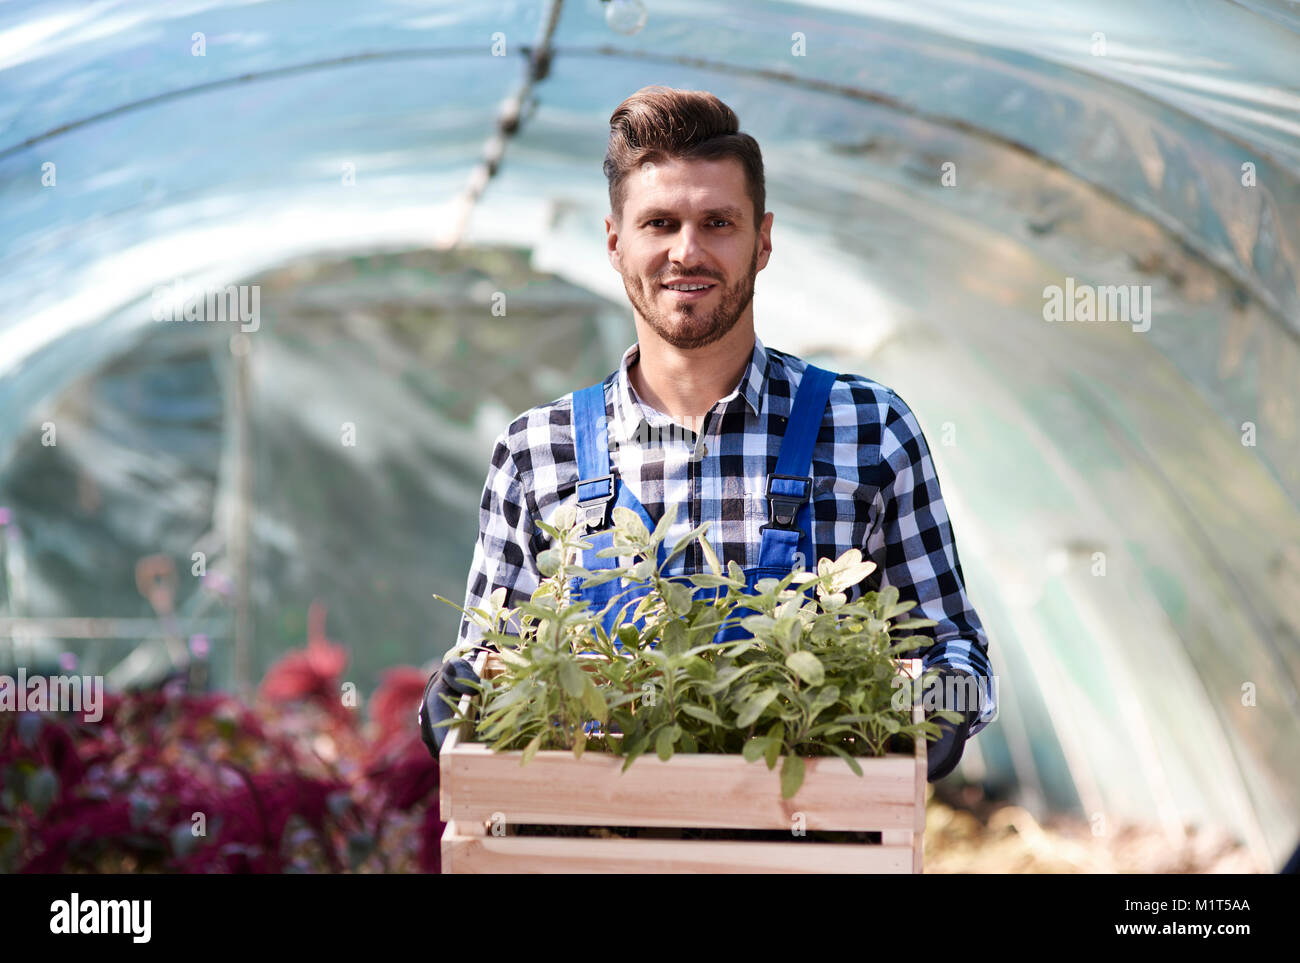 Portrait of gardener holding wooden crate with seedling Stock Photo